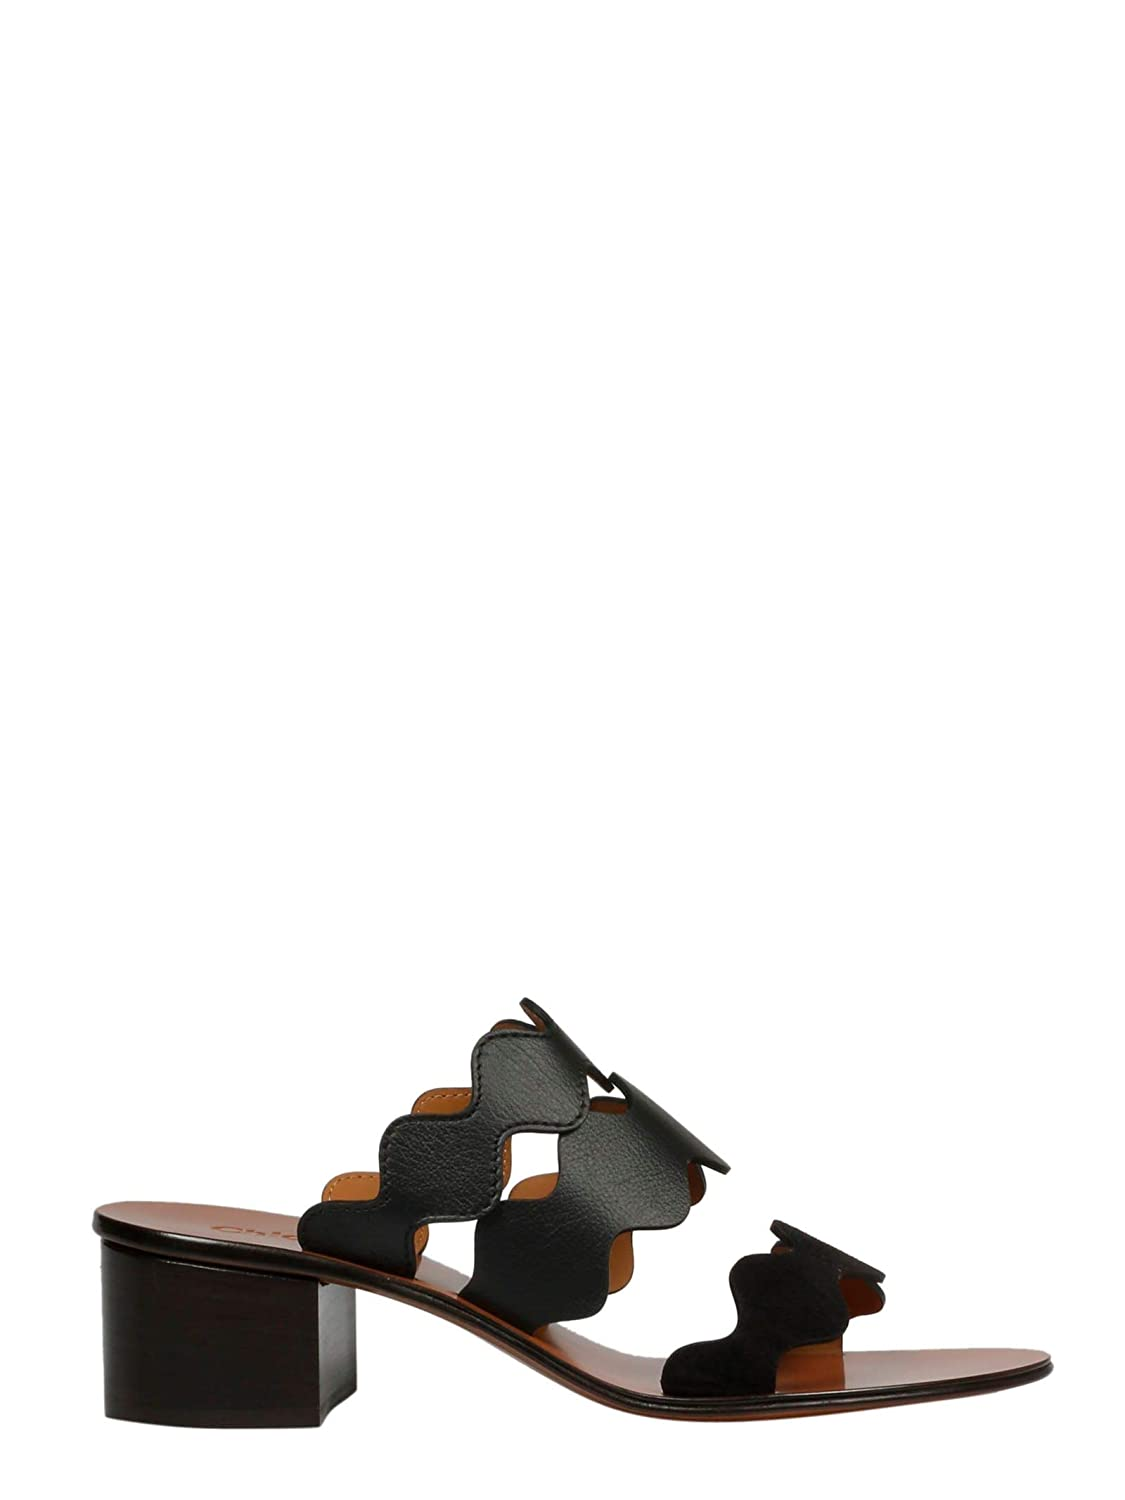 edea4af70dcb8 Chloé Women s CHC17U65142001 Black Leather Sandals  Amazon.co.uk  Shoes    Bags